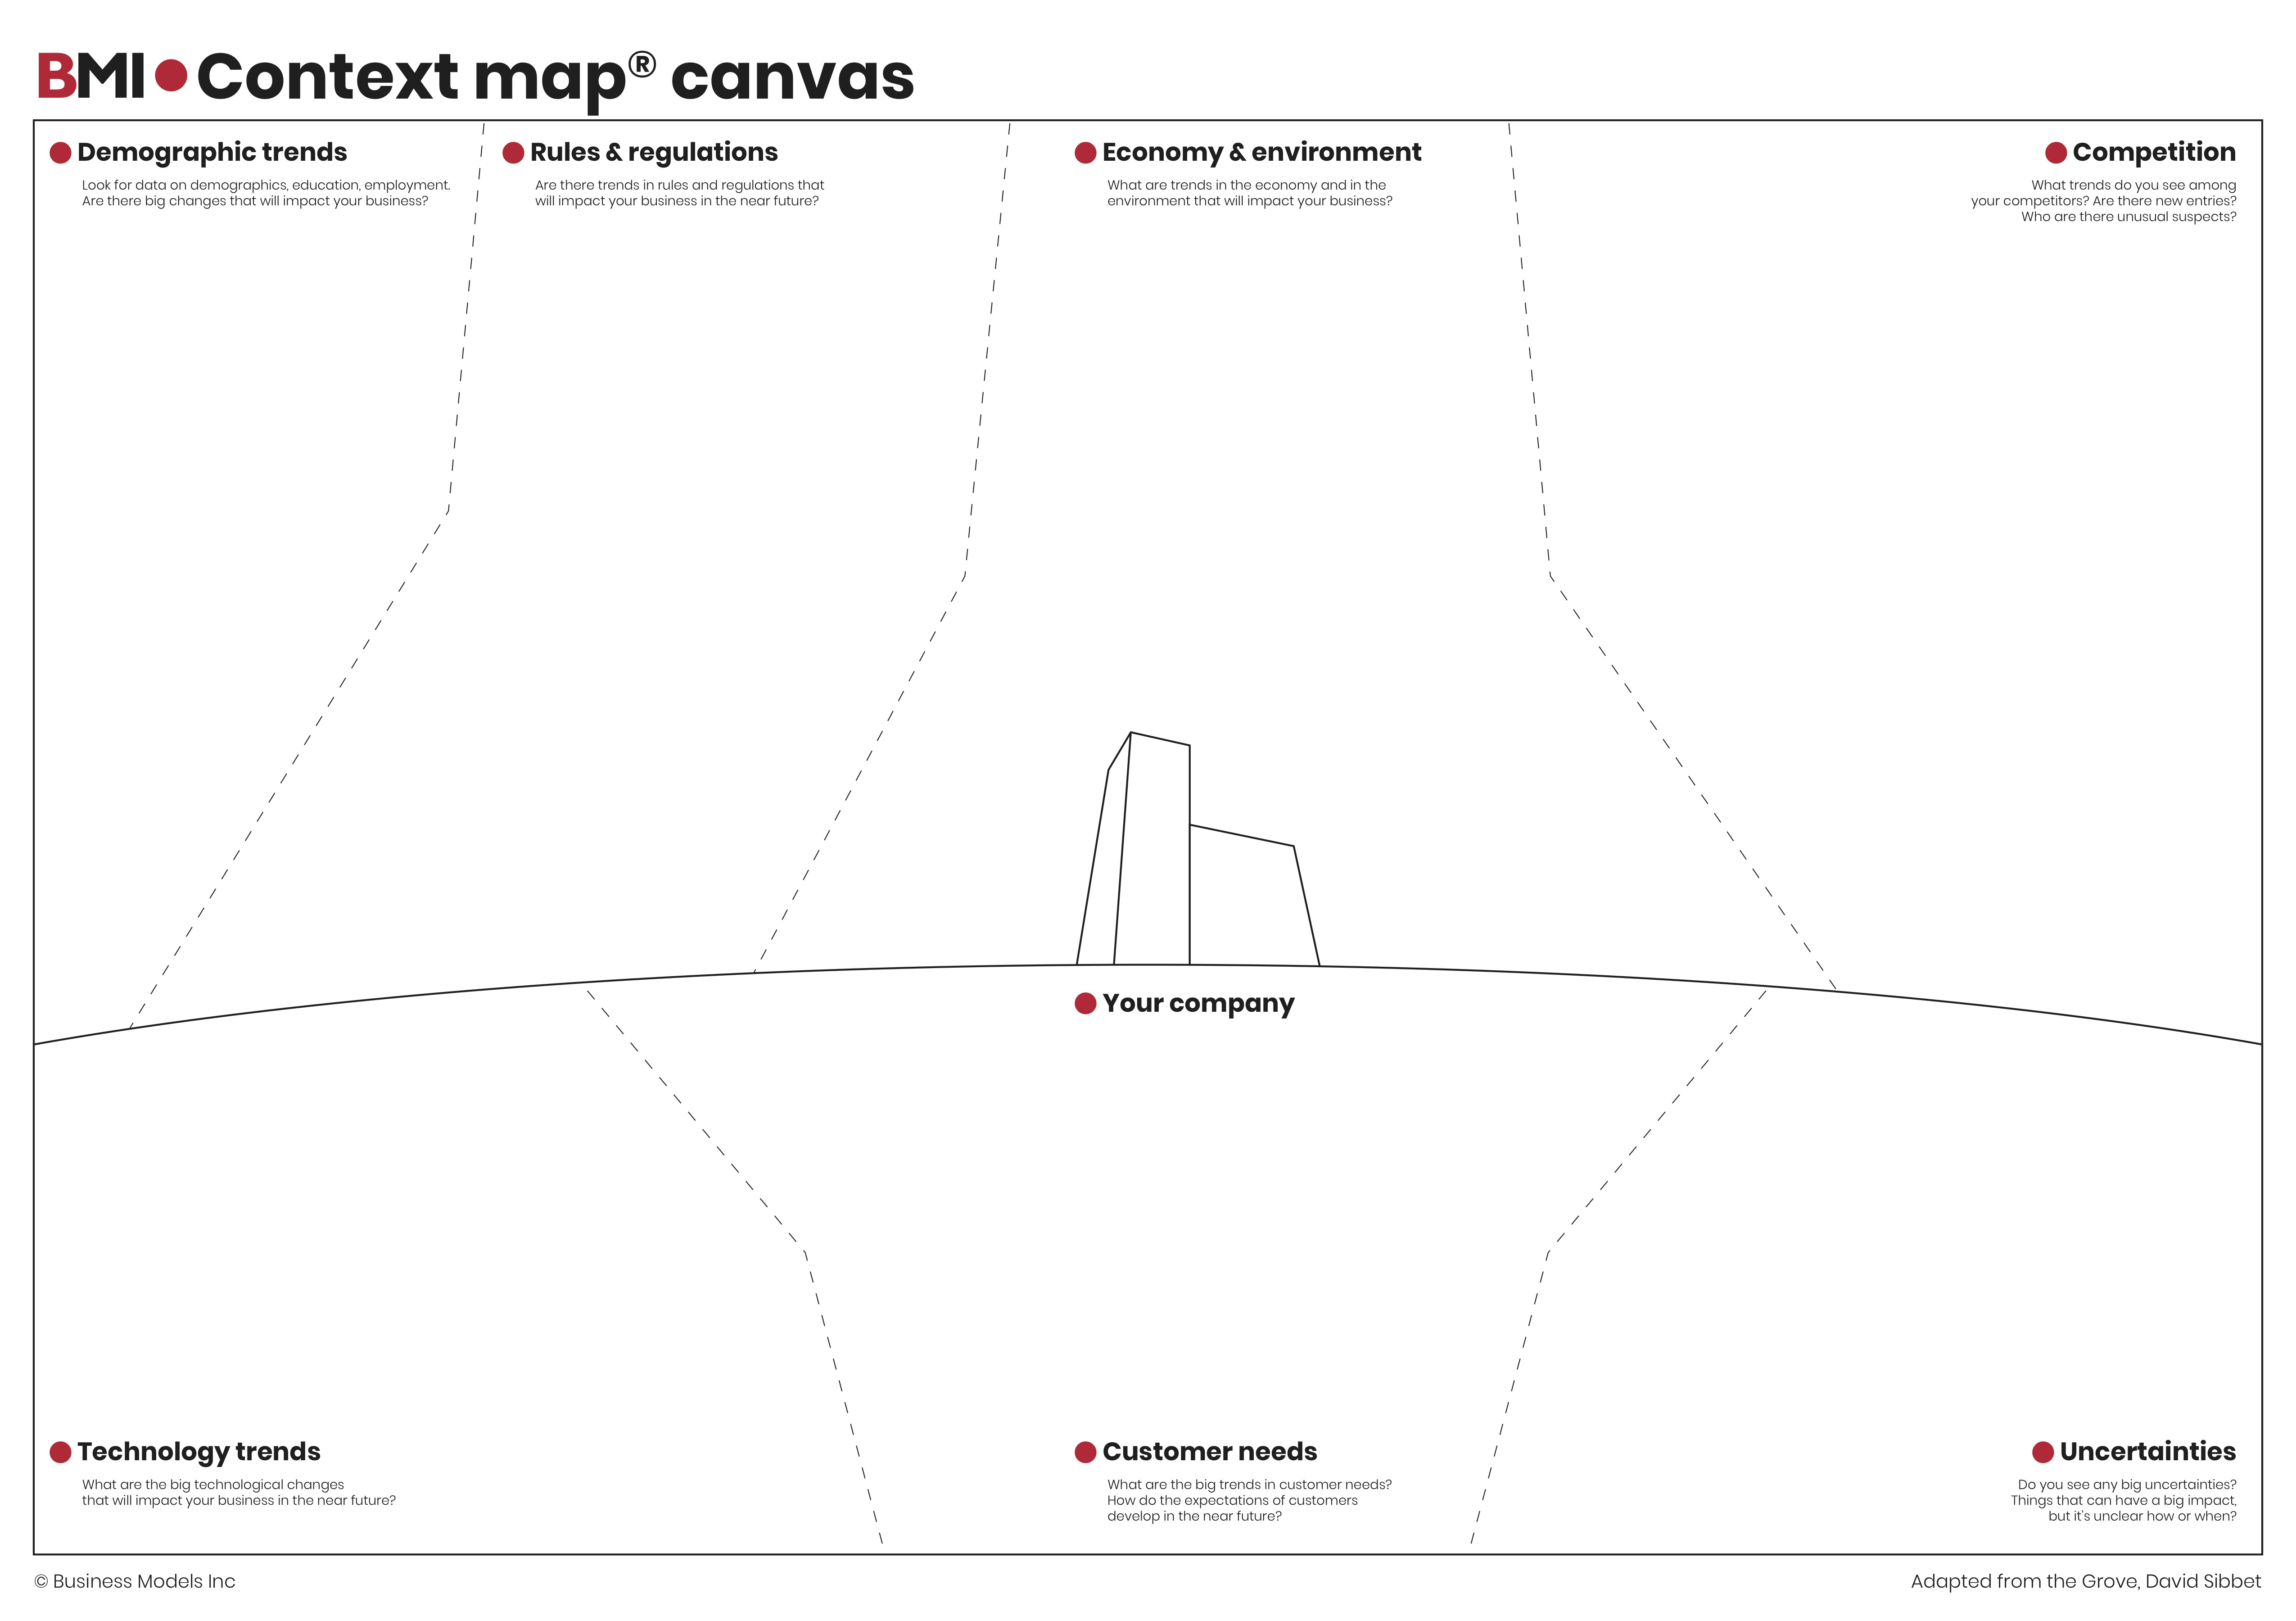 Business Models Inc. - Context Canvas - Template to map out ... on business addresses, operations management, business satellite, business food, business paper, business hotels, business process reengineering, process management, business function, business process, business e-mail, business scale, process capability, business process improvement, business plan, force field analysis, business management program, responsibility assignment matrix, business workflow analysis, business operations, business testimonials, business art, business drawing, business data chart, business blog, business compass, business model, business outline, business process management, business culture, business vision,